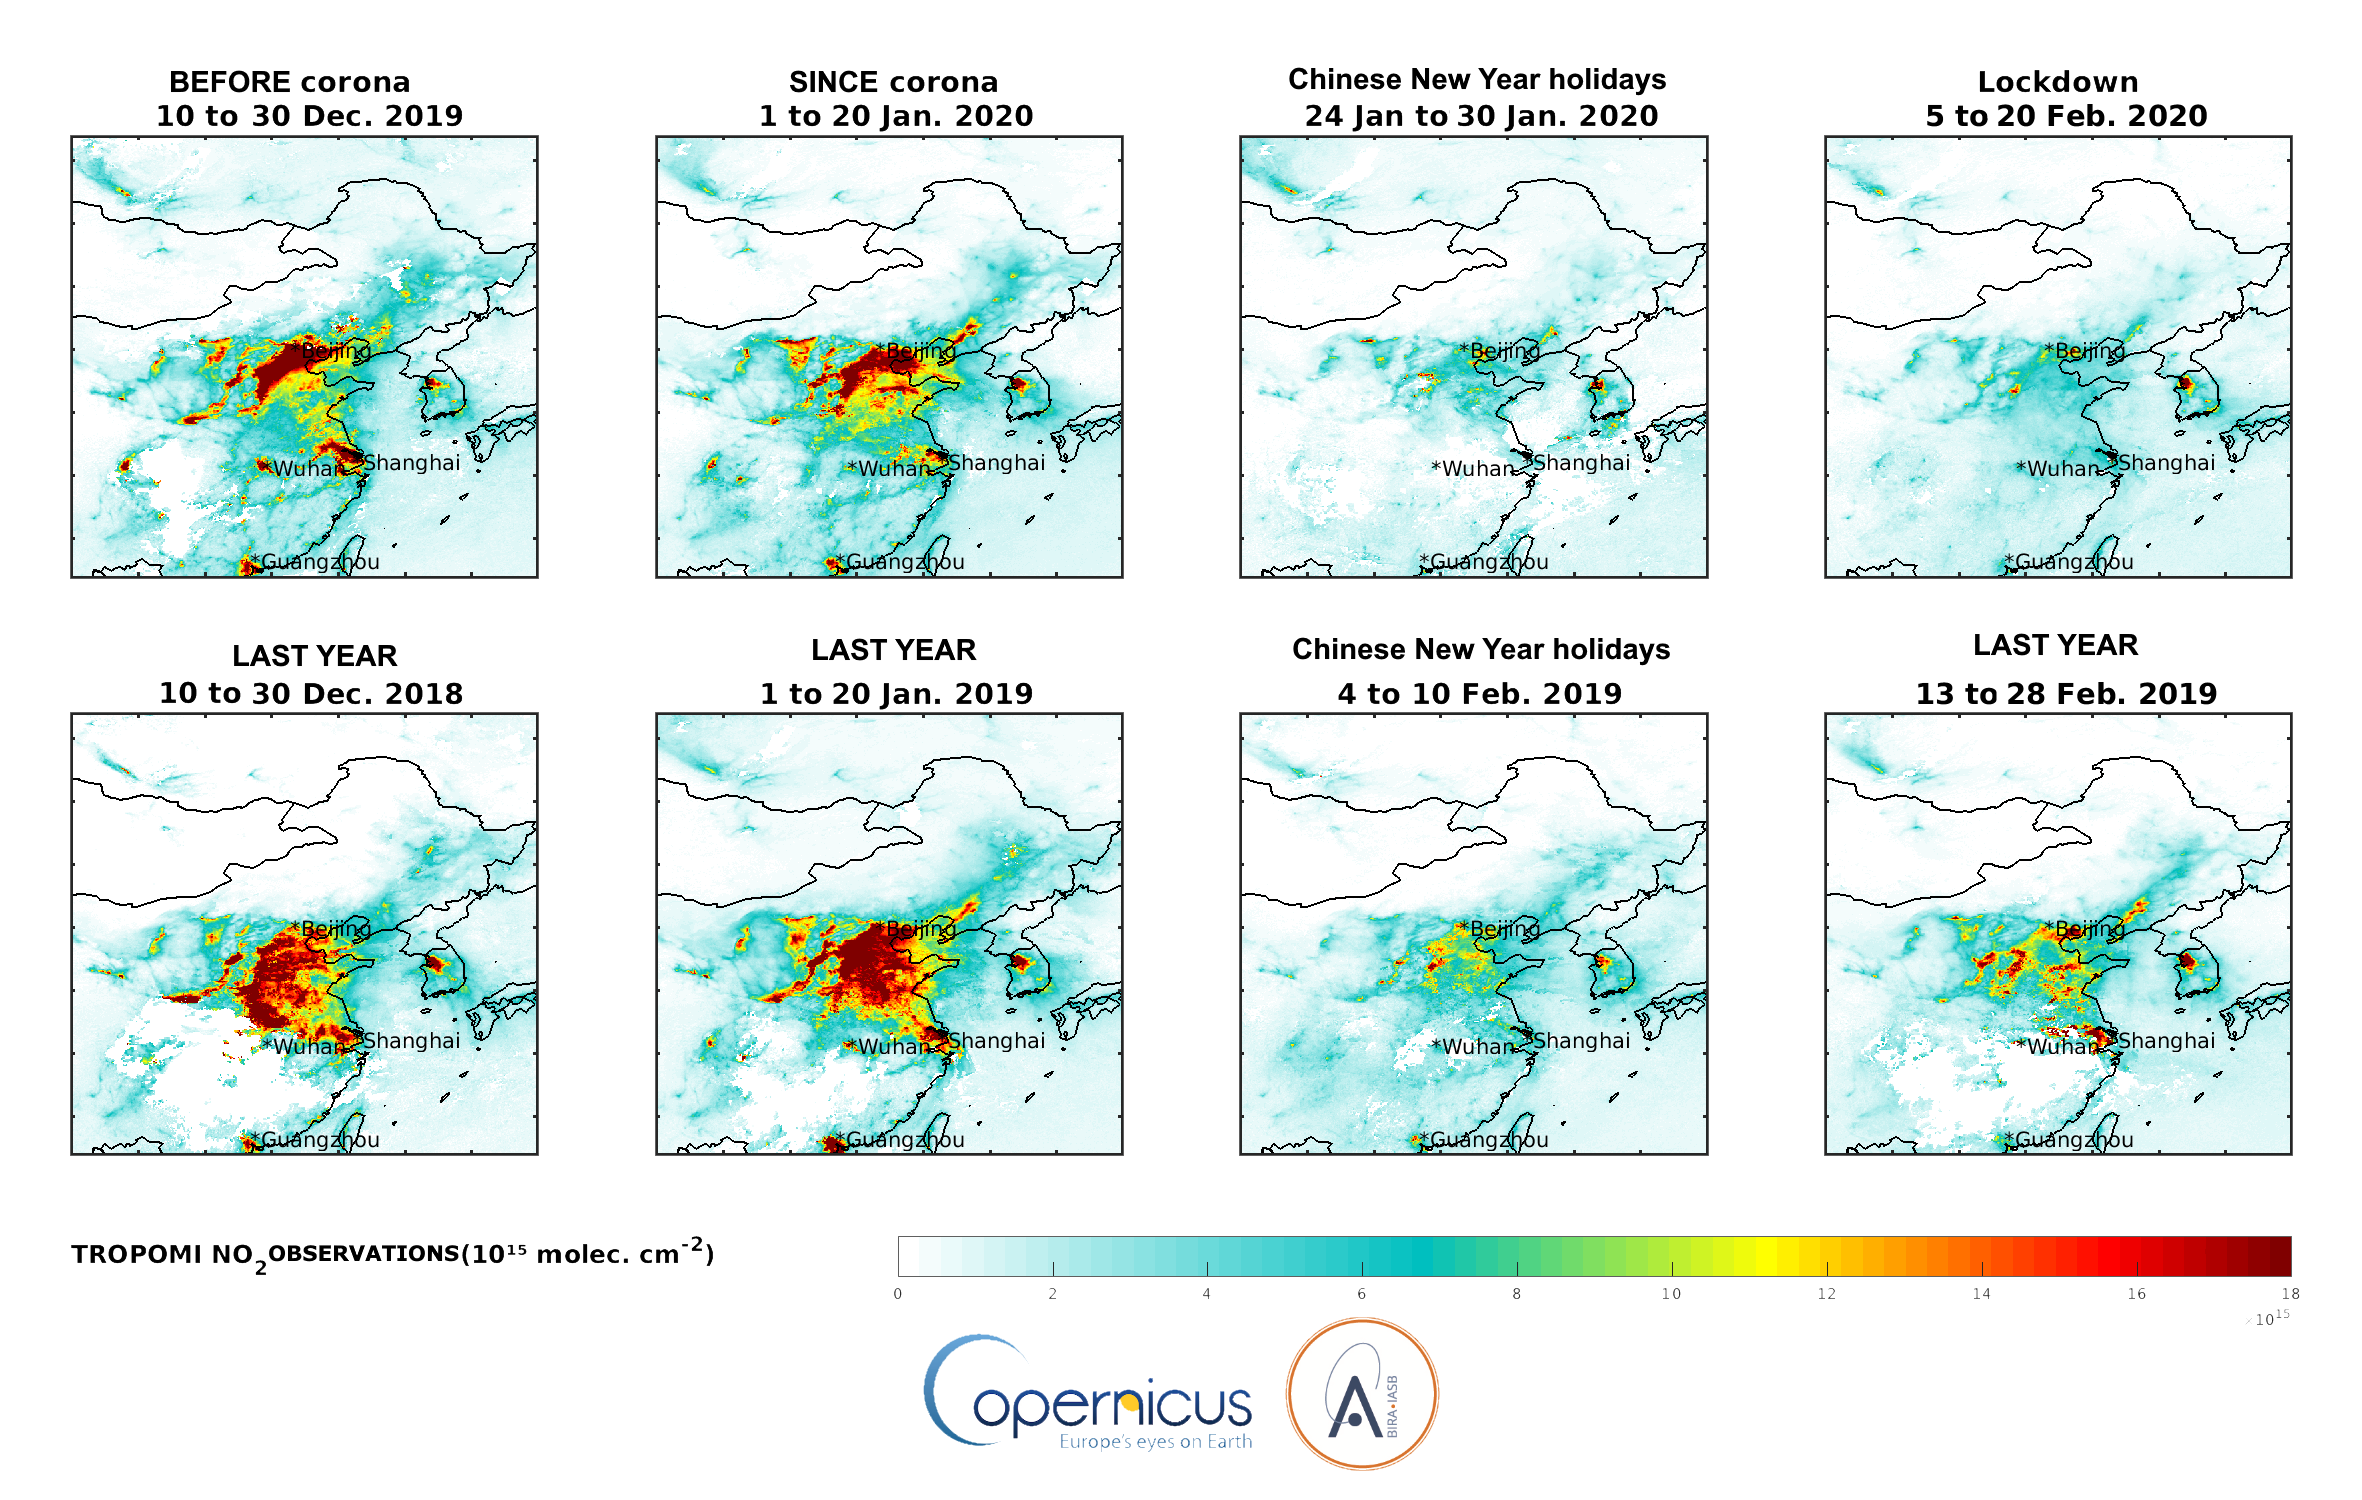 Reduced NO2 emissions over China due to corona virus